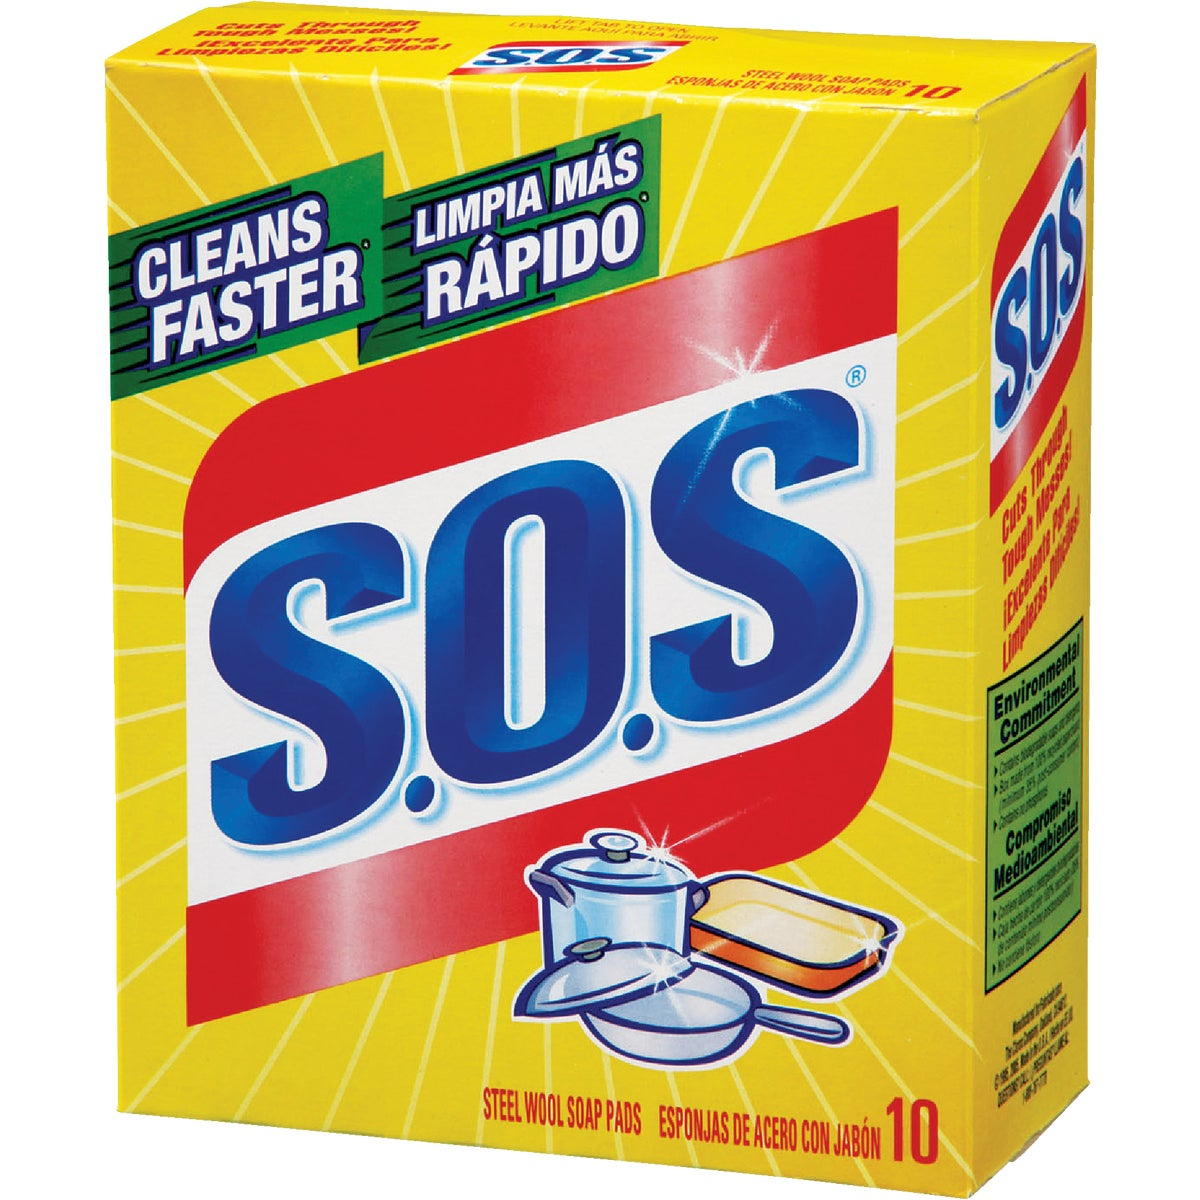 Clorox/Home Cleaning 10PK SCOURING PADS 98032